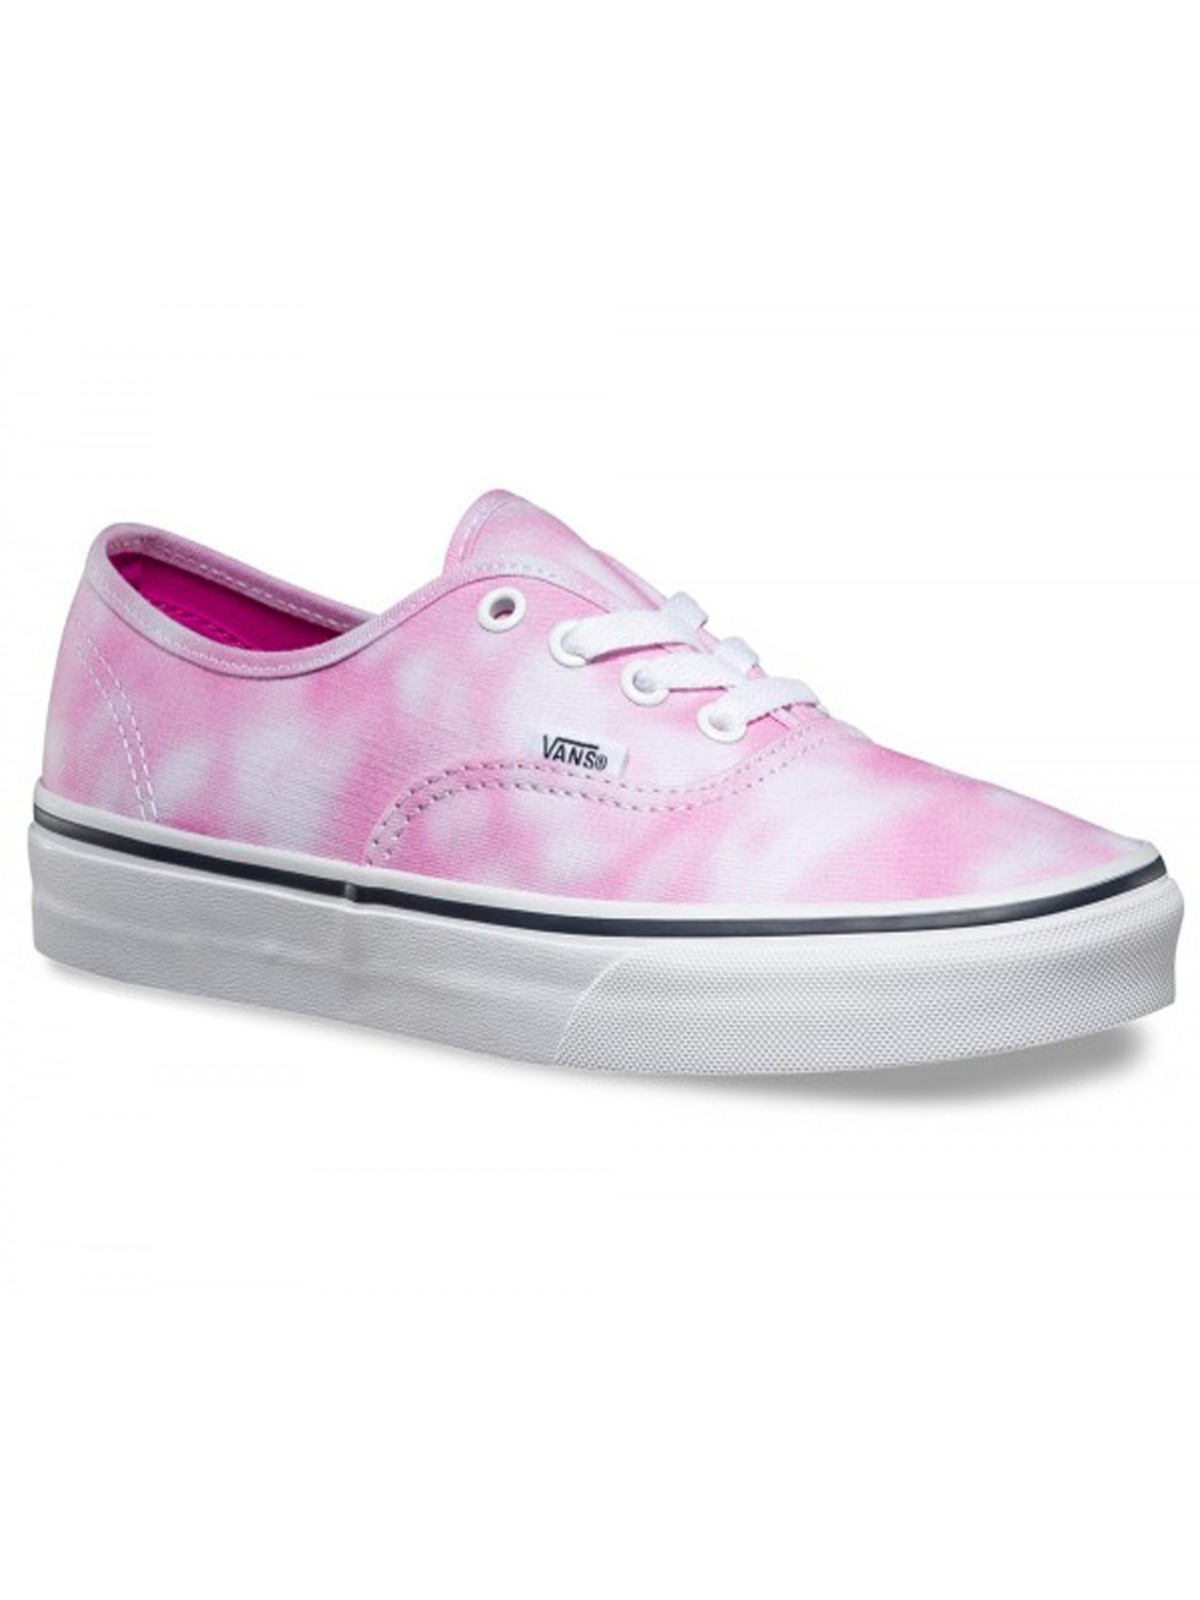 Vans Authentic toile tie dye rose